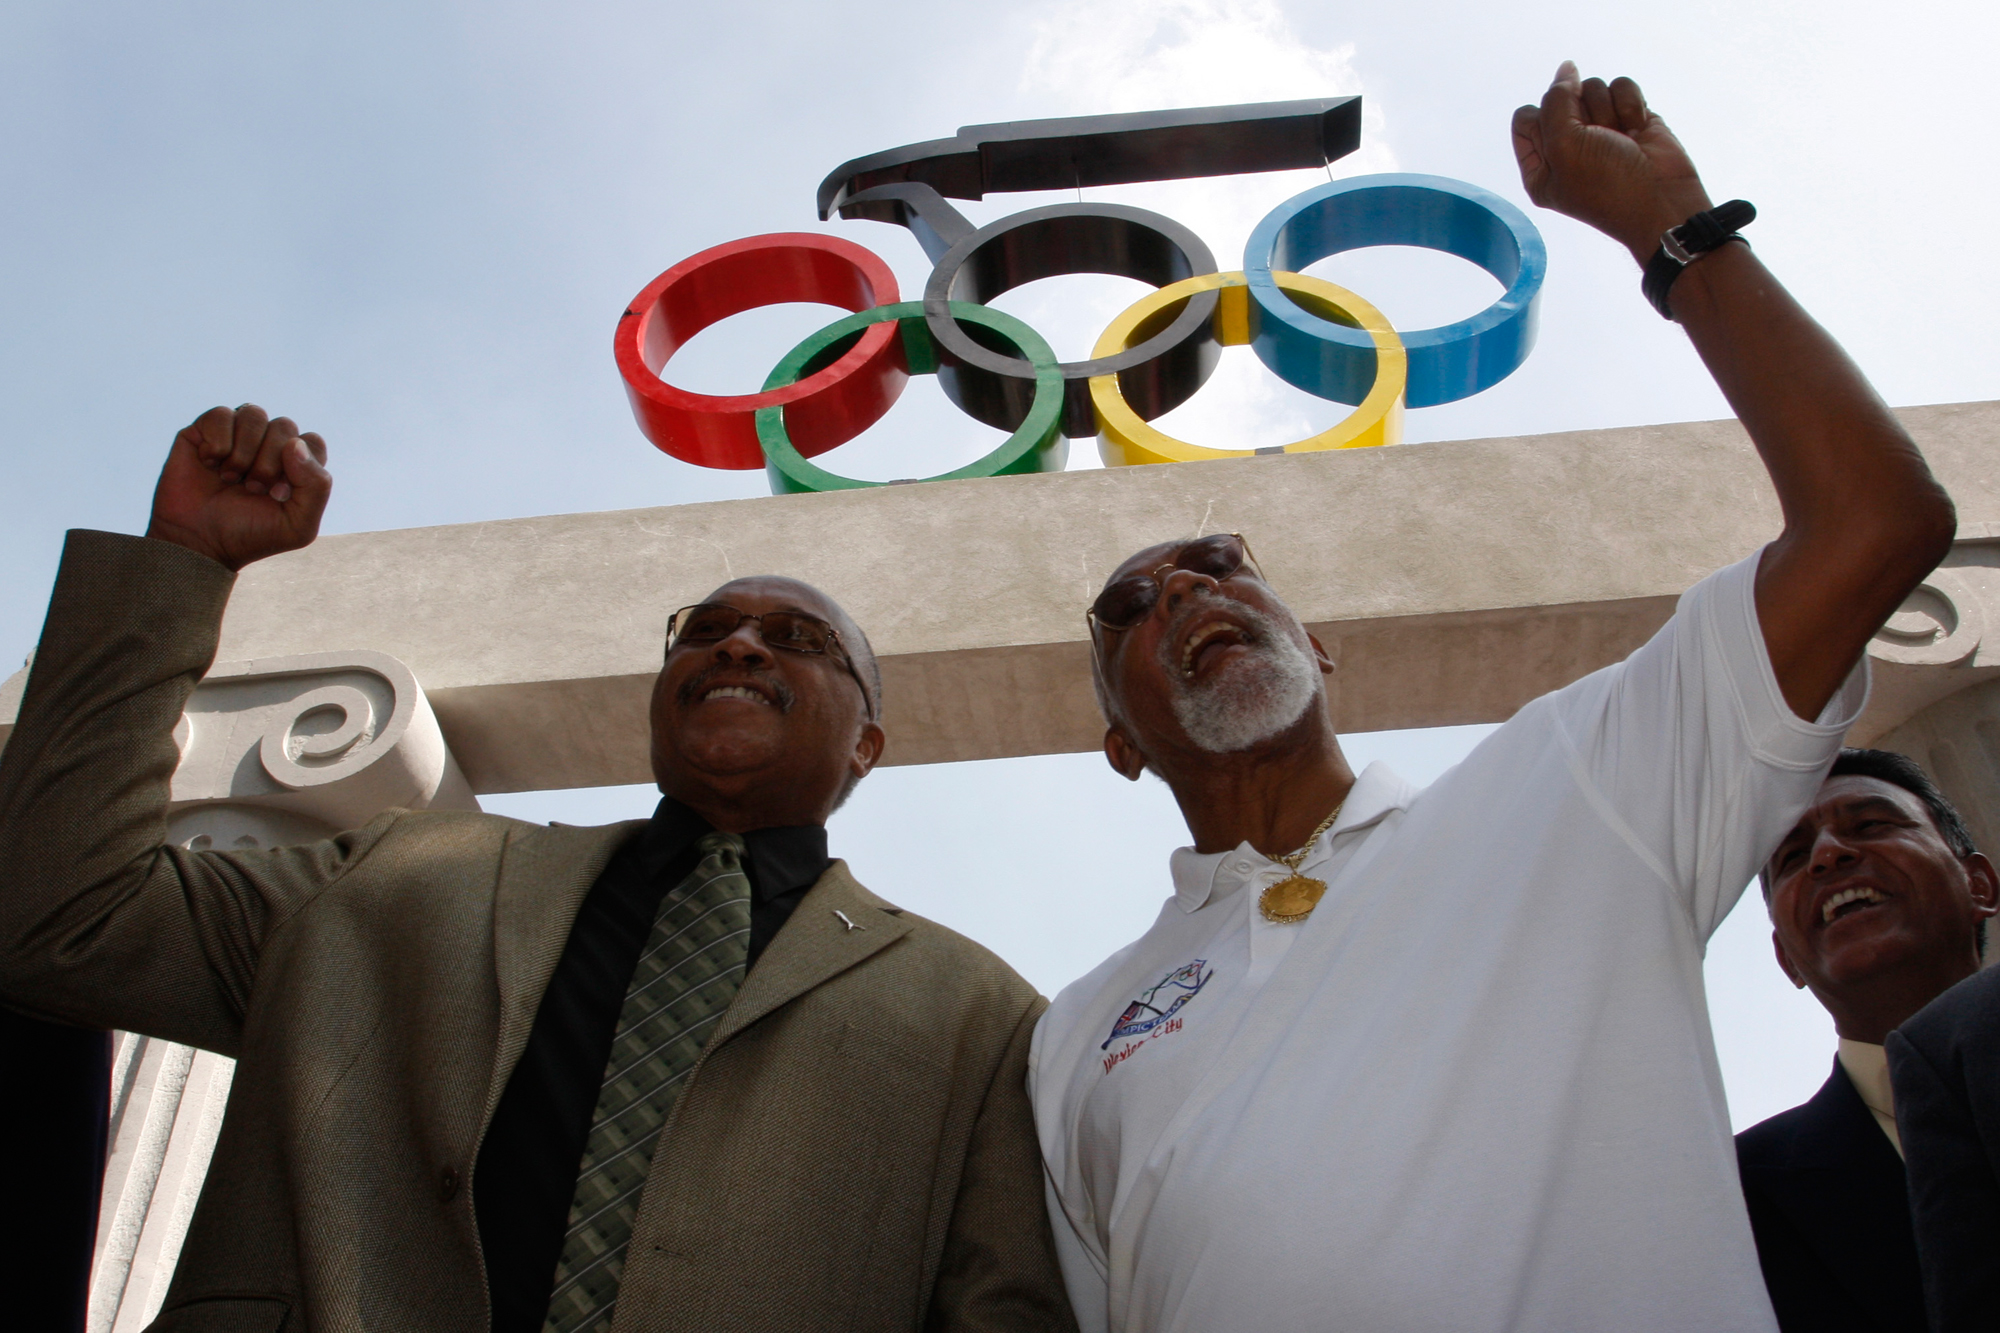 U.S. Olympic medallists Tommie Smith, left, and John Carlos hold up their fists at the Mexican Olympic Committee building in Mexico City, Wednesday, Oct. 15, 2008.